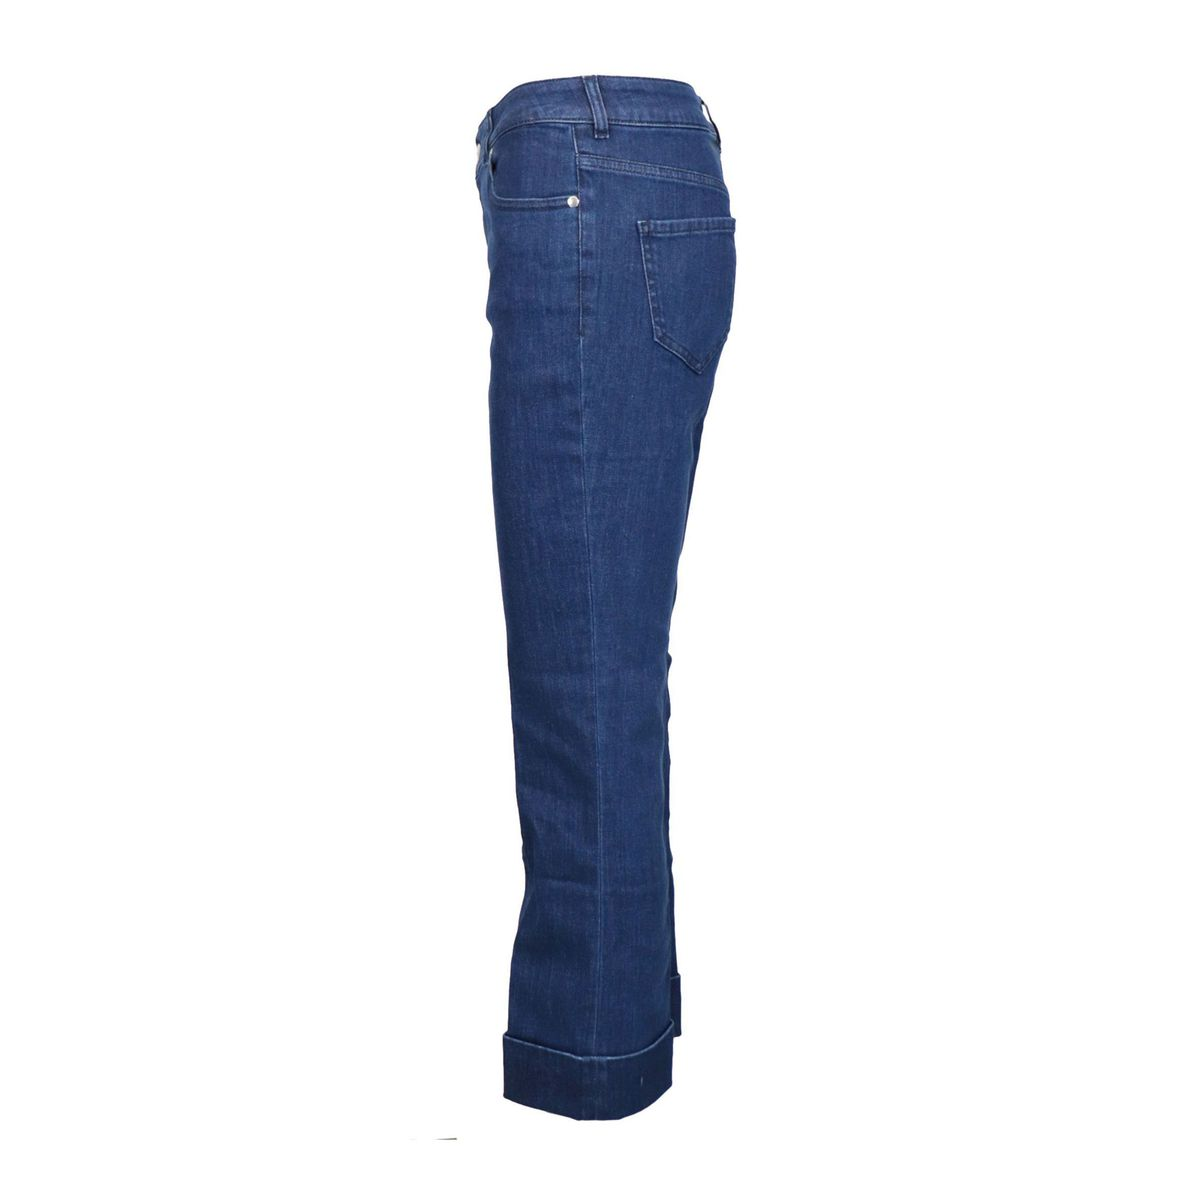 5-pocket straight leg jeans in light denim Dark denim Fay